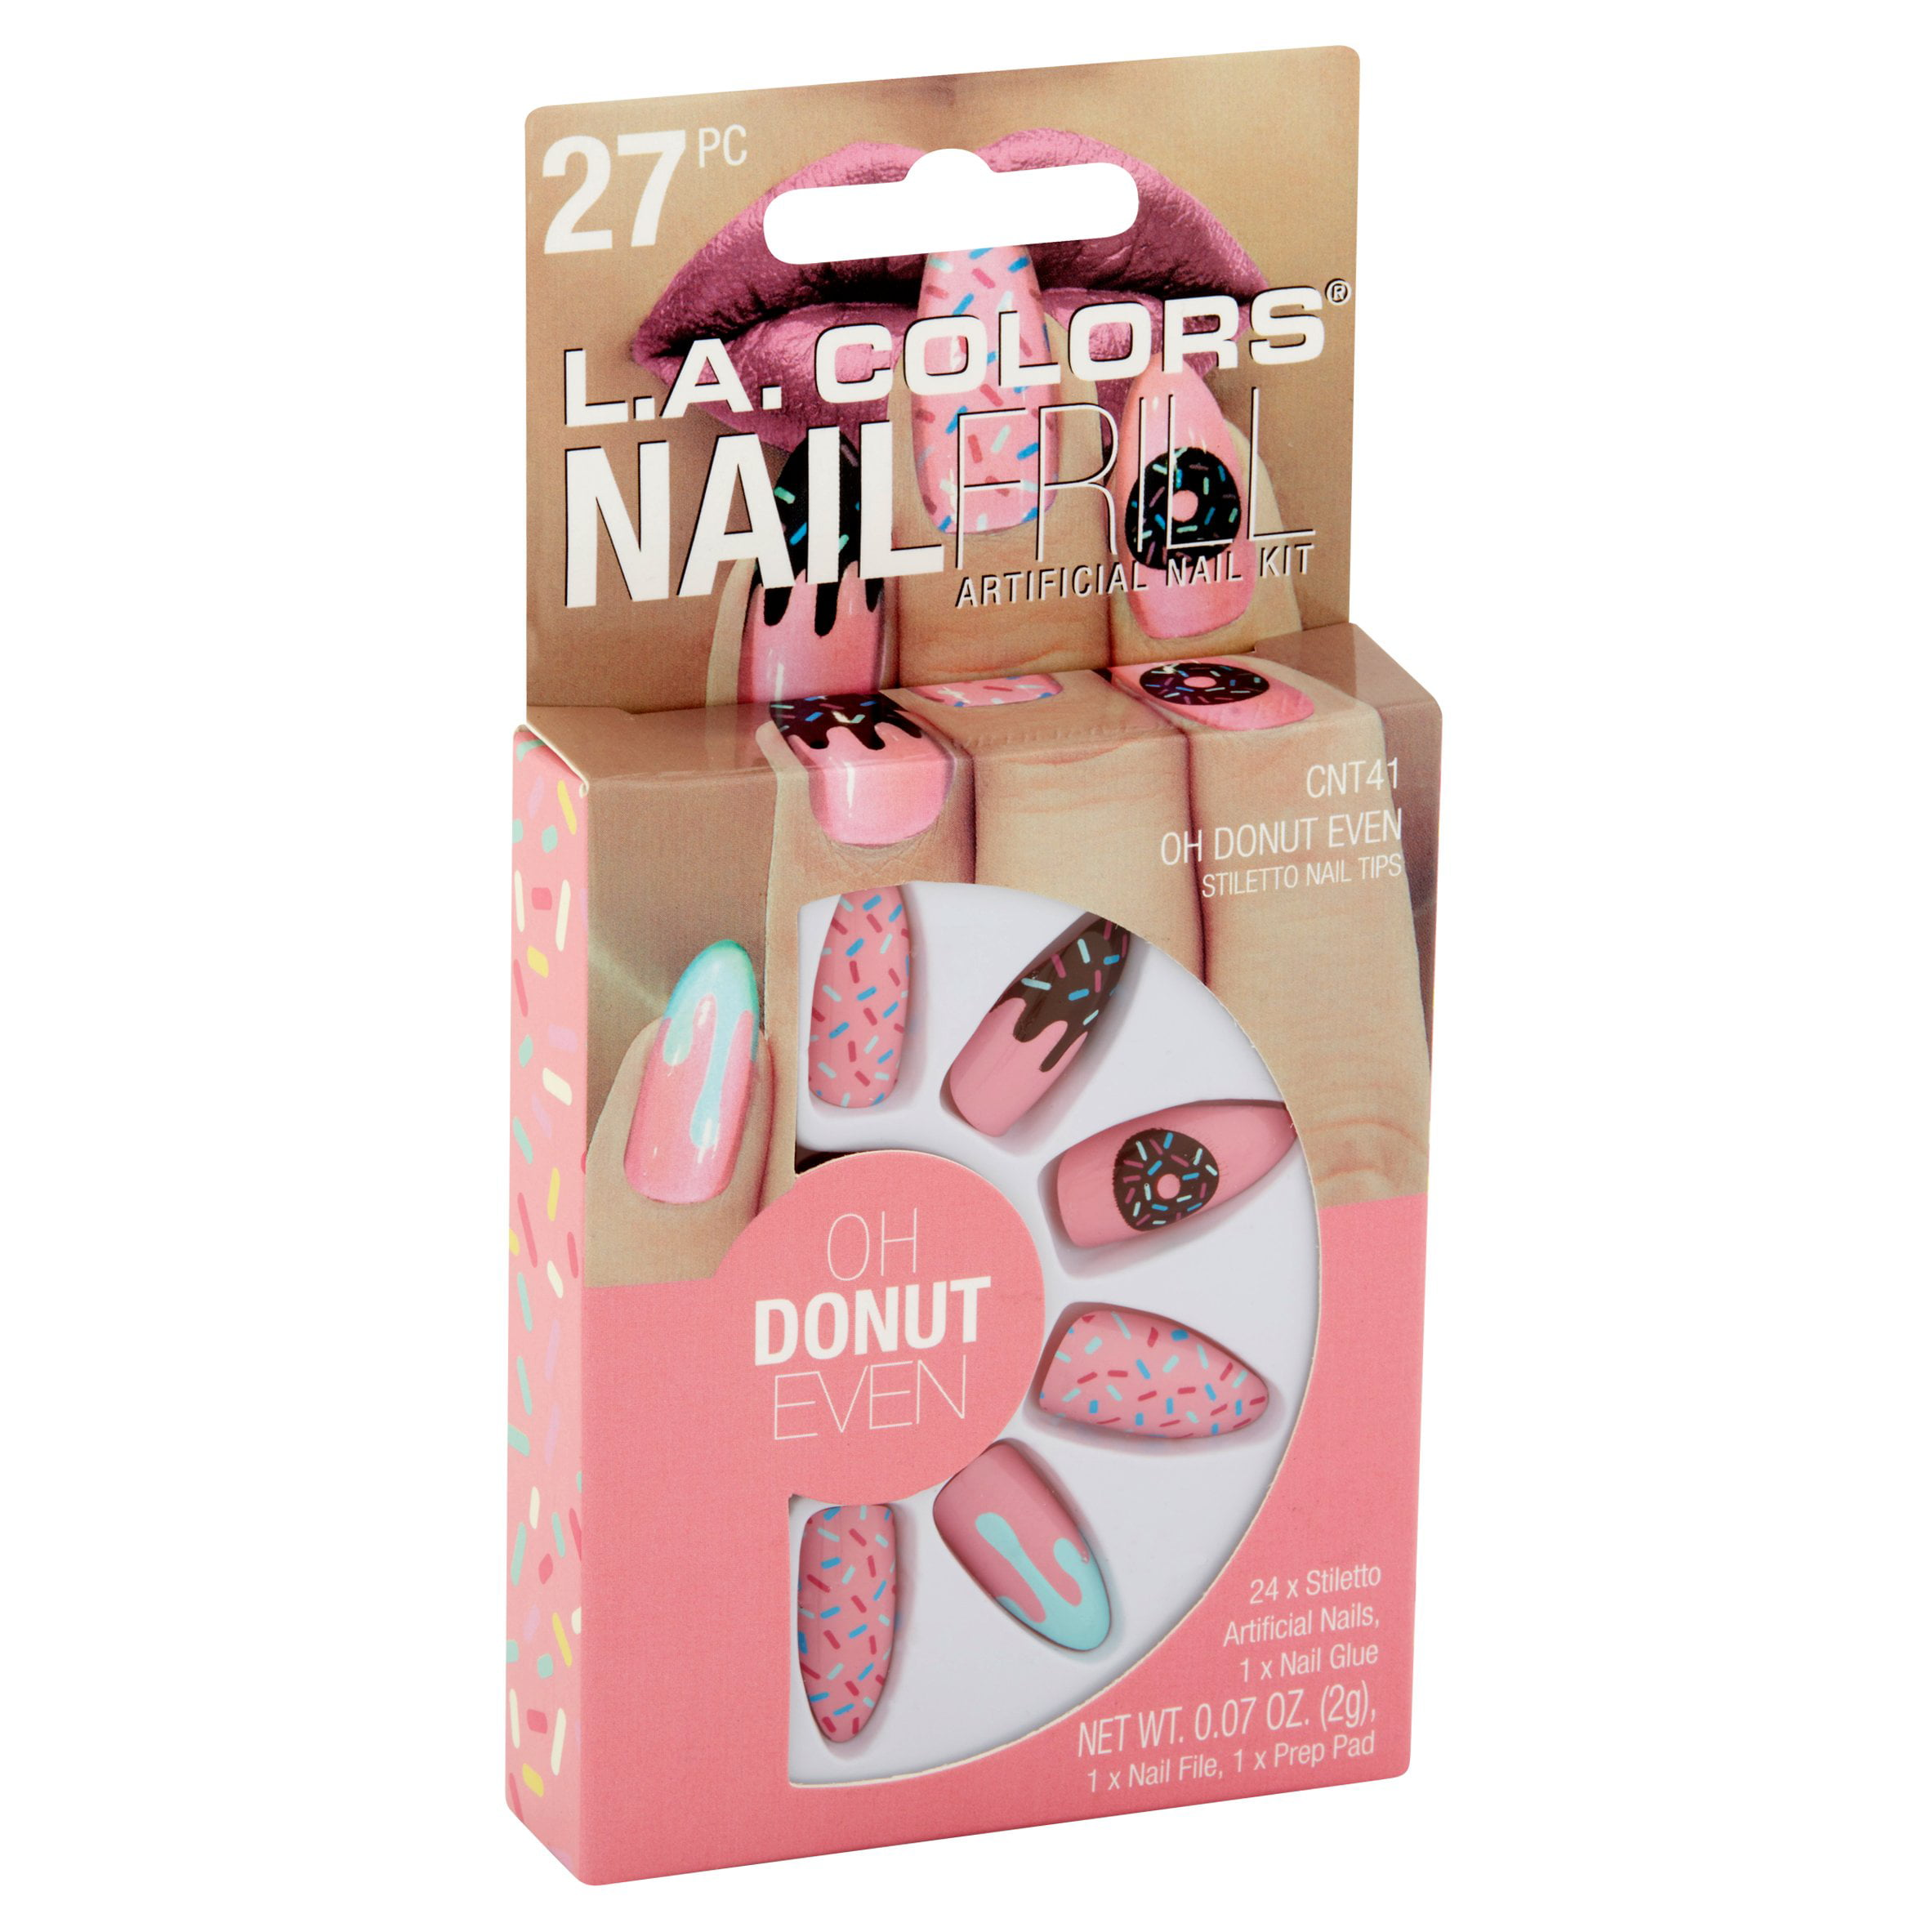 L A Colors Nail Frill Artificial Kit Oh Donut Even 27 Pc